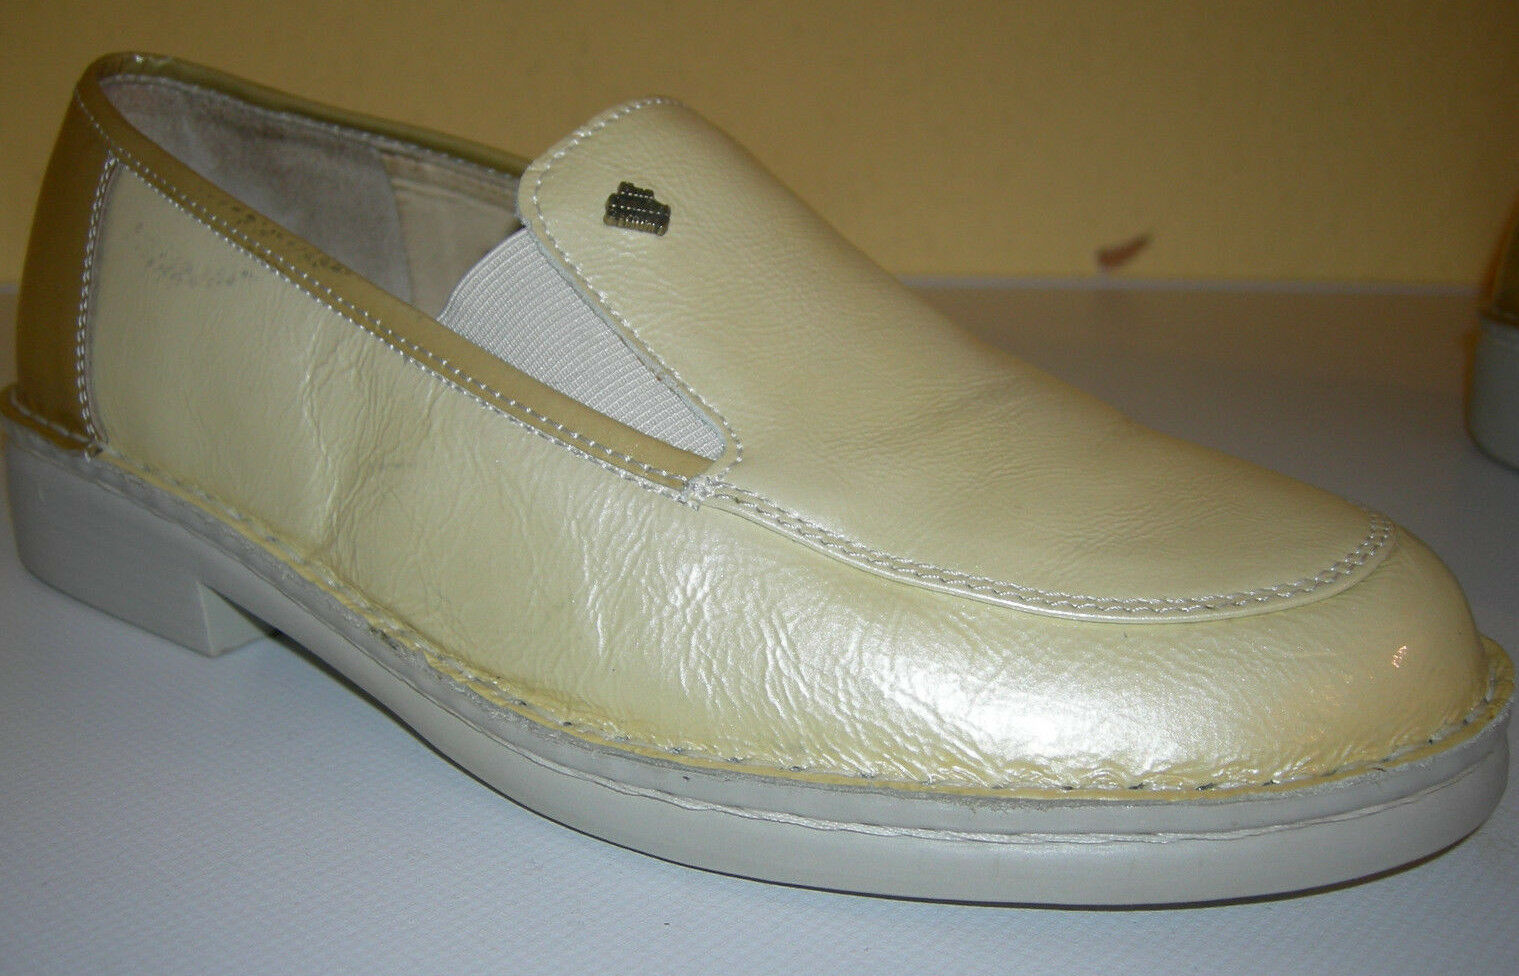 FINN Comfort-Womens 8 US,(5 1 2 UK) ,leather loafer, loafer, loafer,  P-W-46  NEW 908cfe